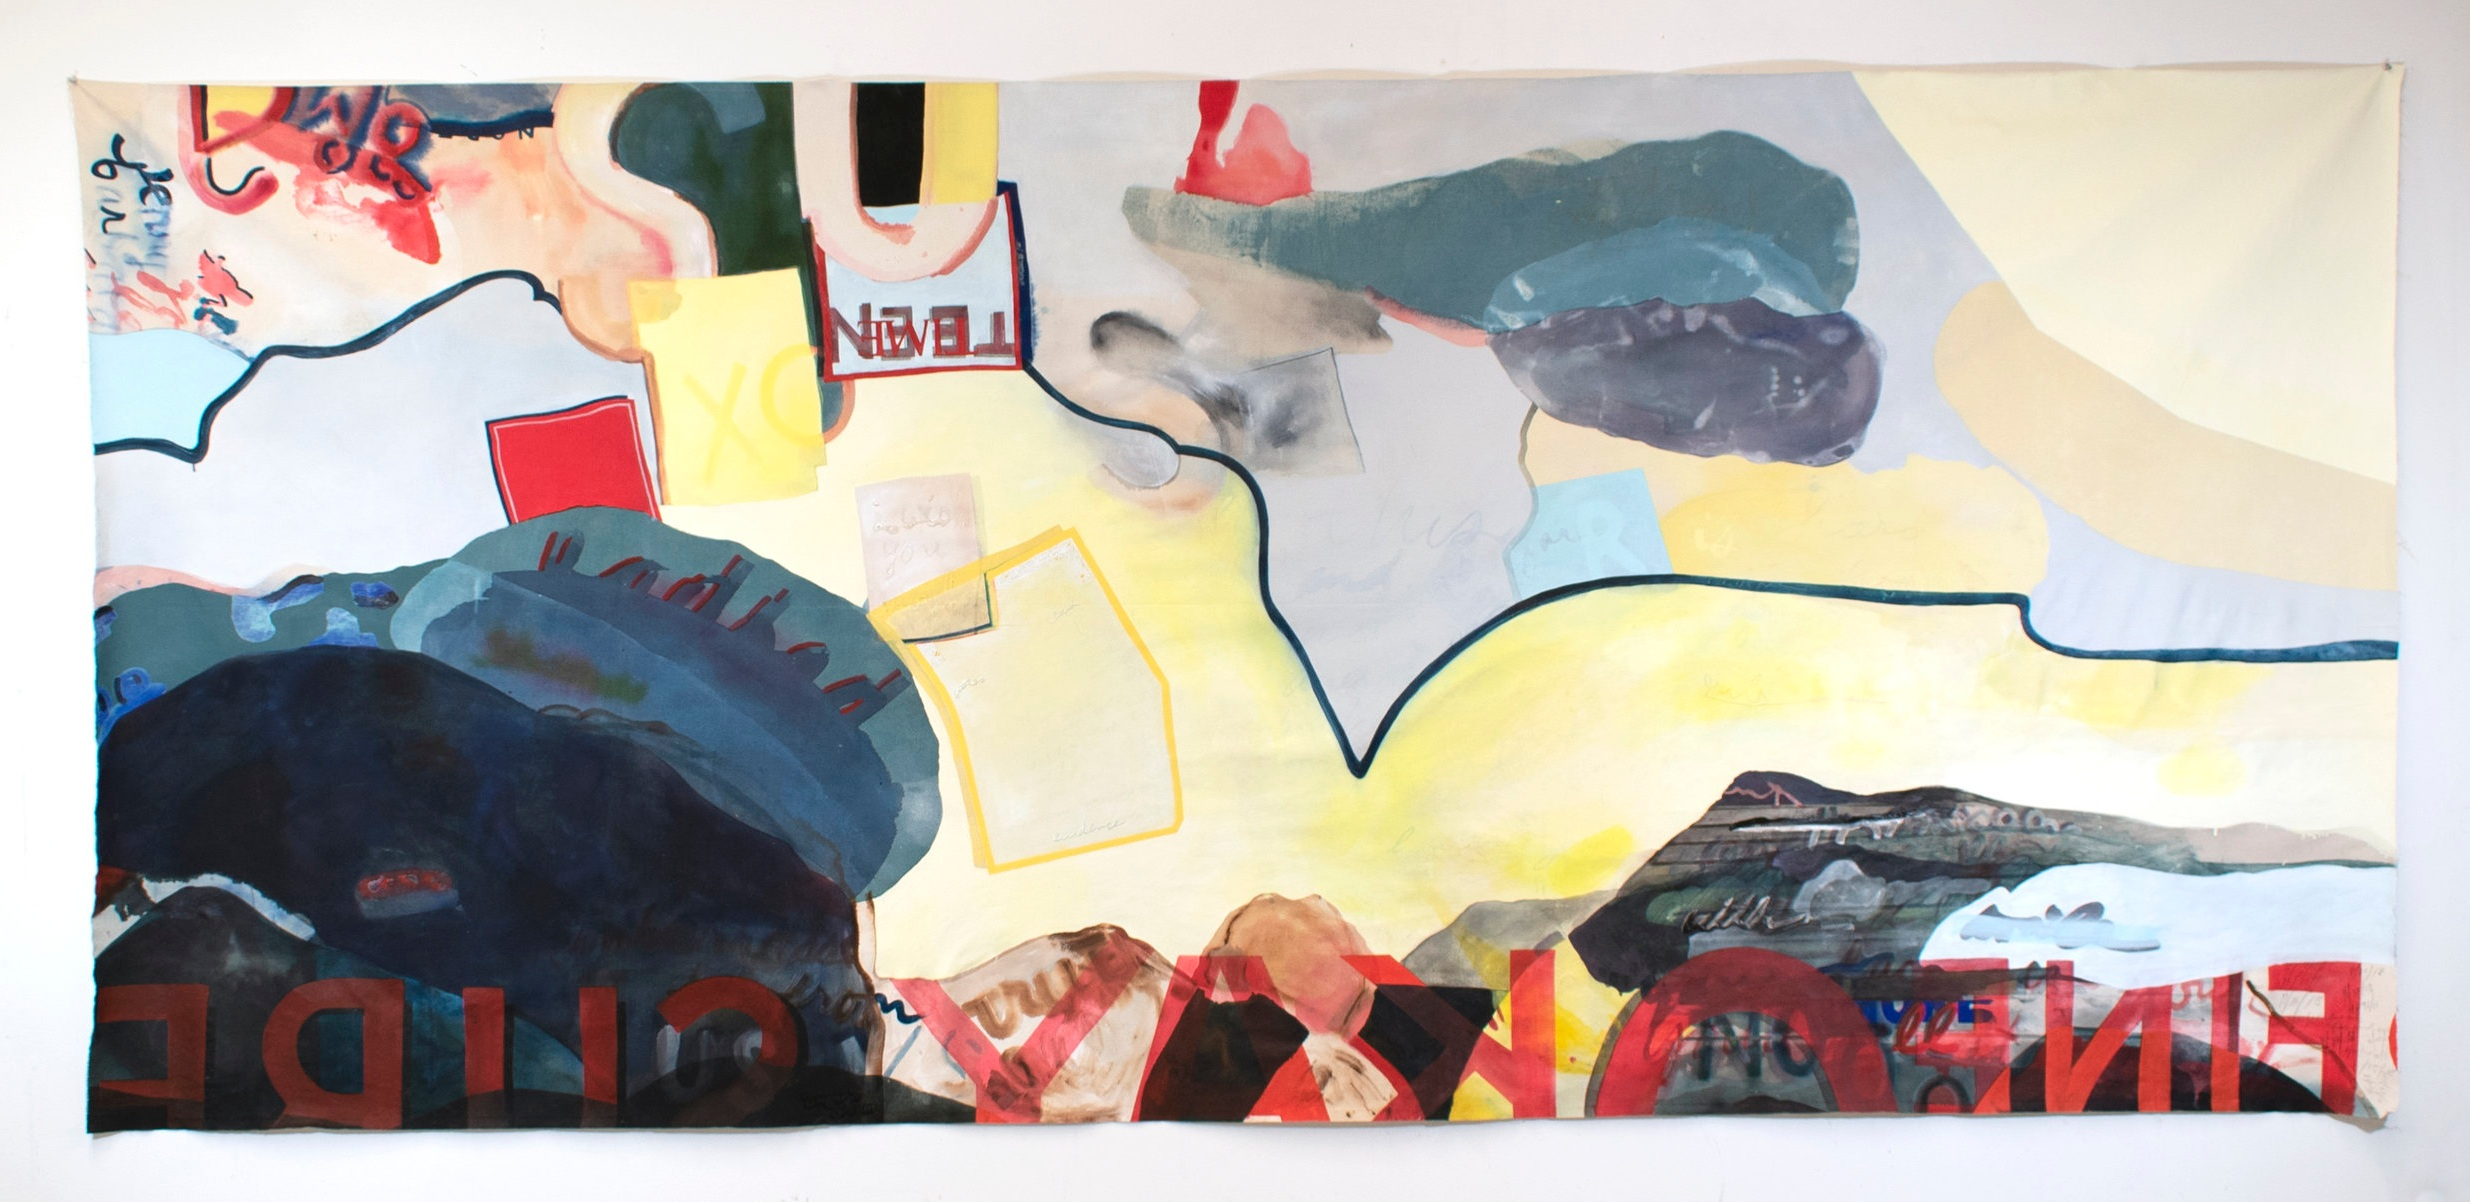 winding canyon , 2019, acrylic, oil, ink, glue, and puff paint on unstretched canvas, 59 x 131 inches